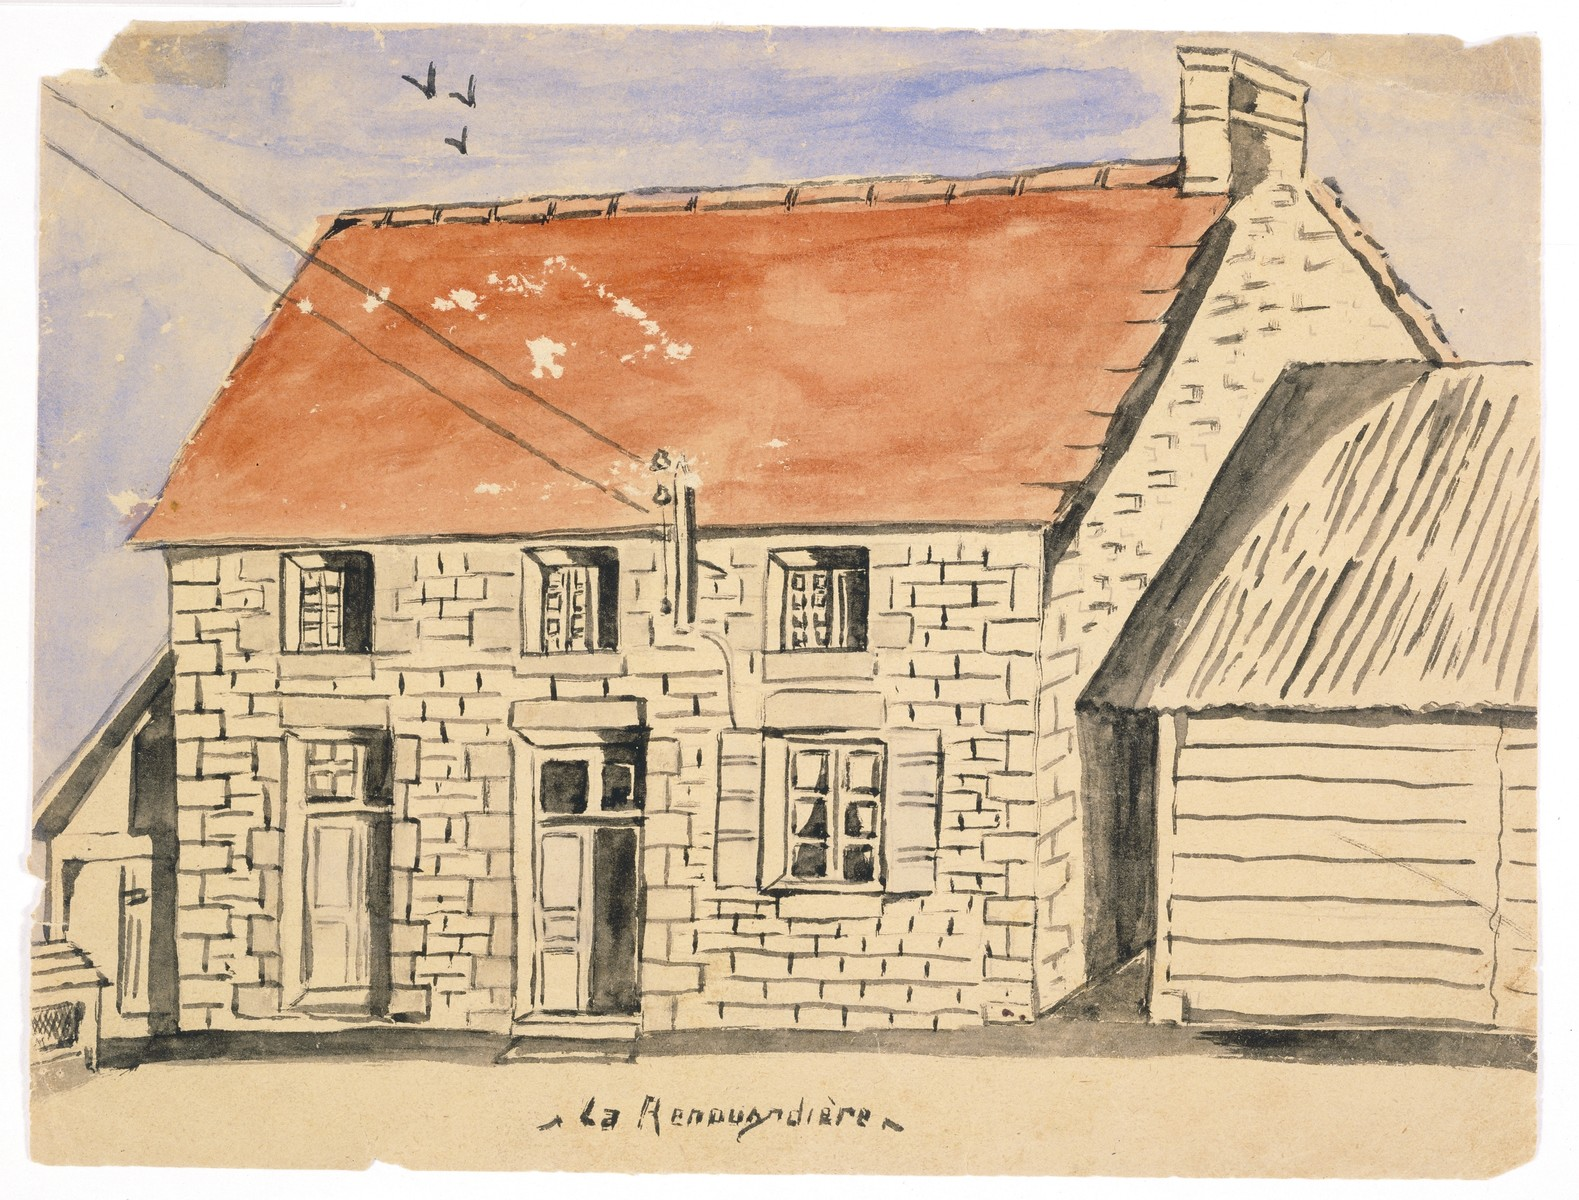 """Watercolor painting by Simon Jeruchim entitled """"La Renourdiere,"""" depicting the exterior of the house the artist lived in while hiding from the Nazis during the German occupation of France.   The top three windows look out from the the attic, where the artist hid."""